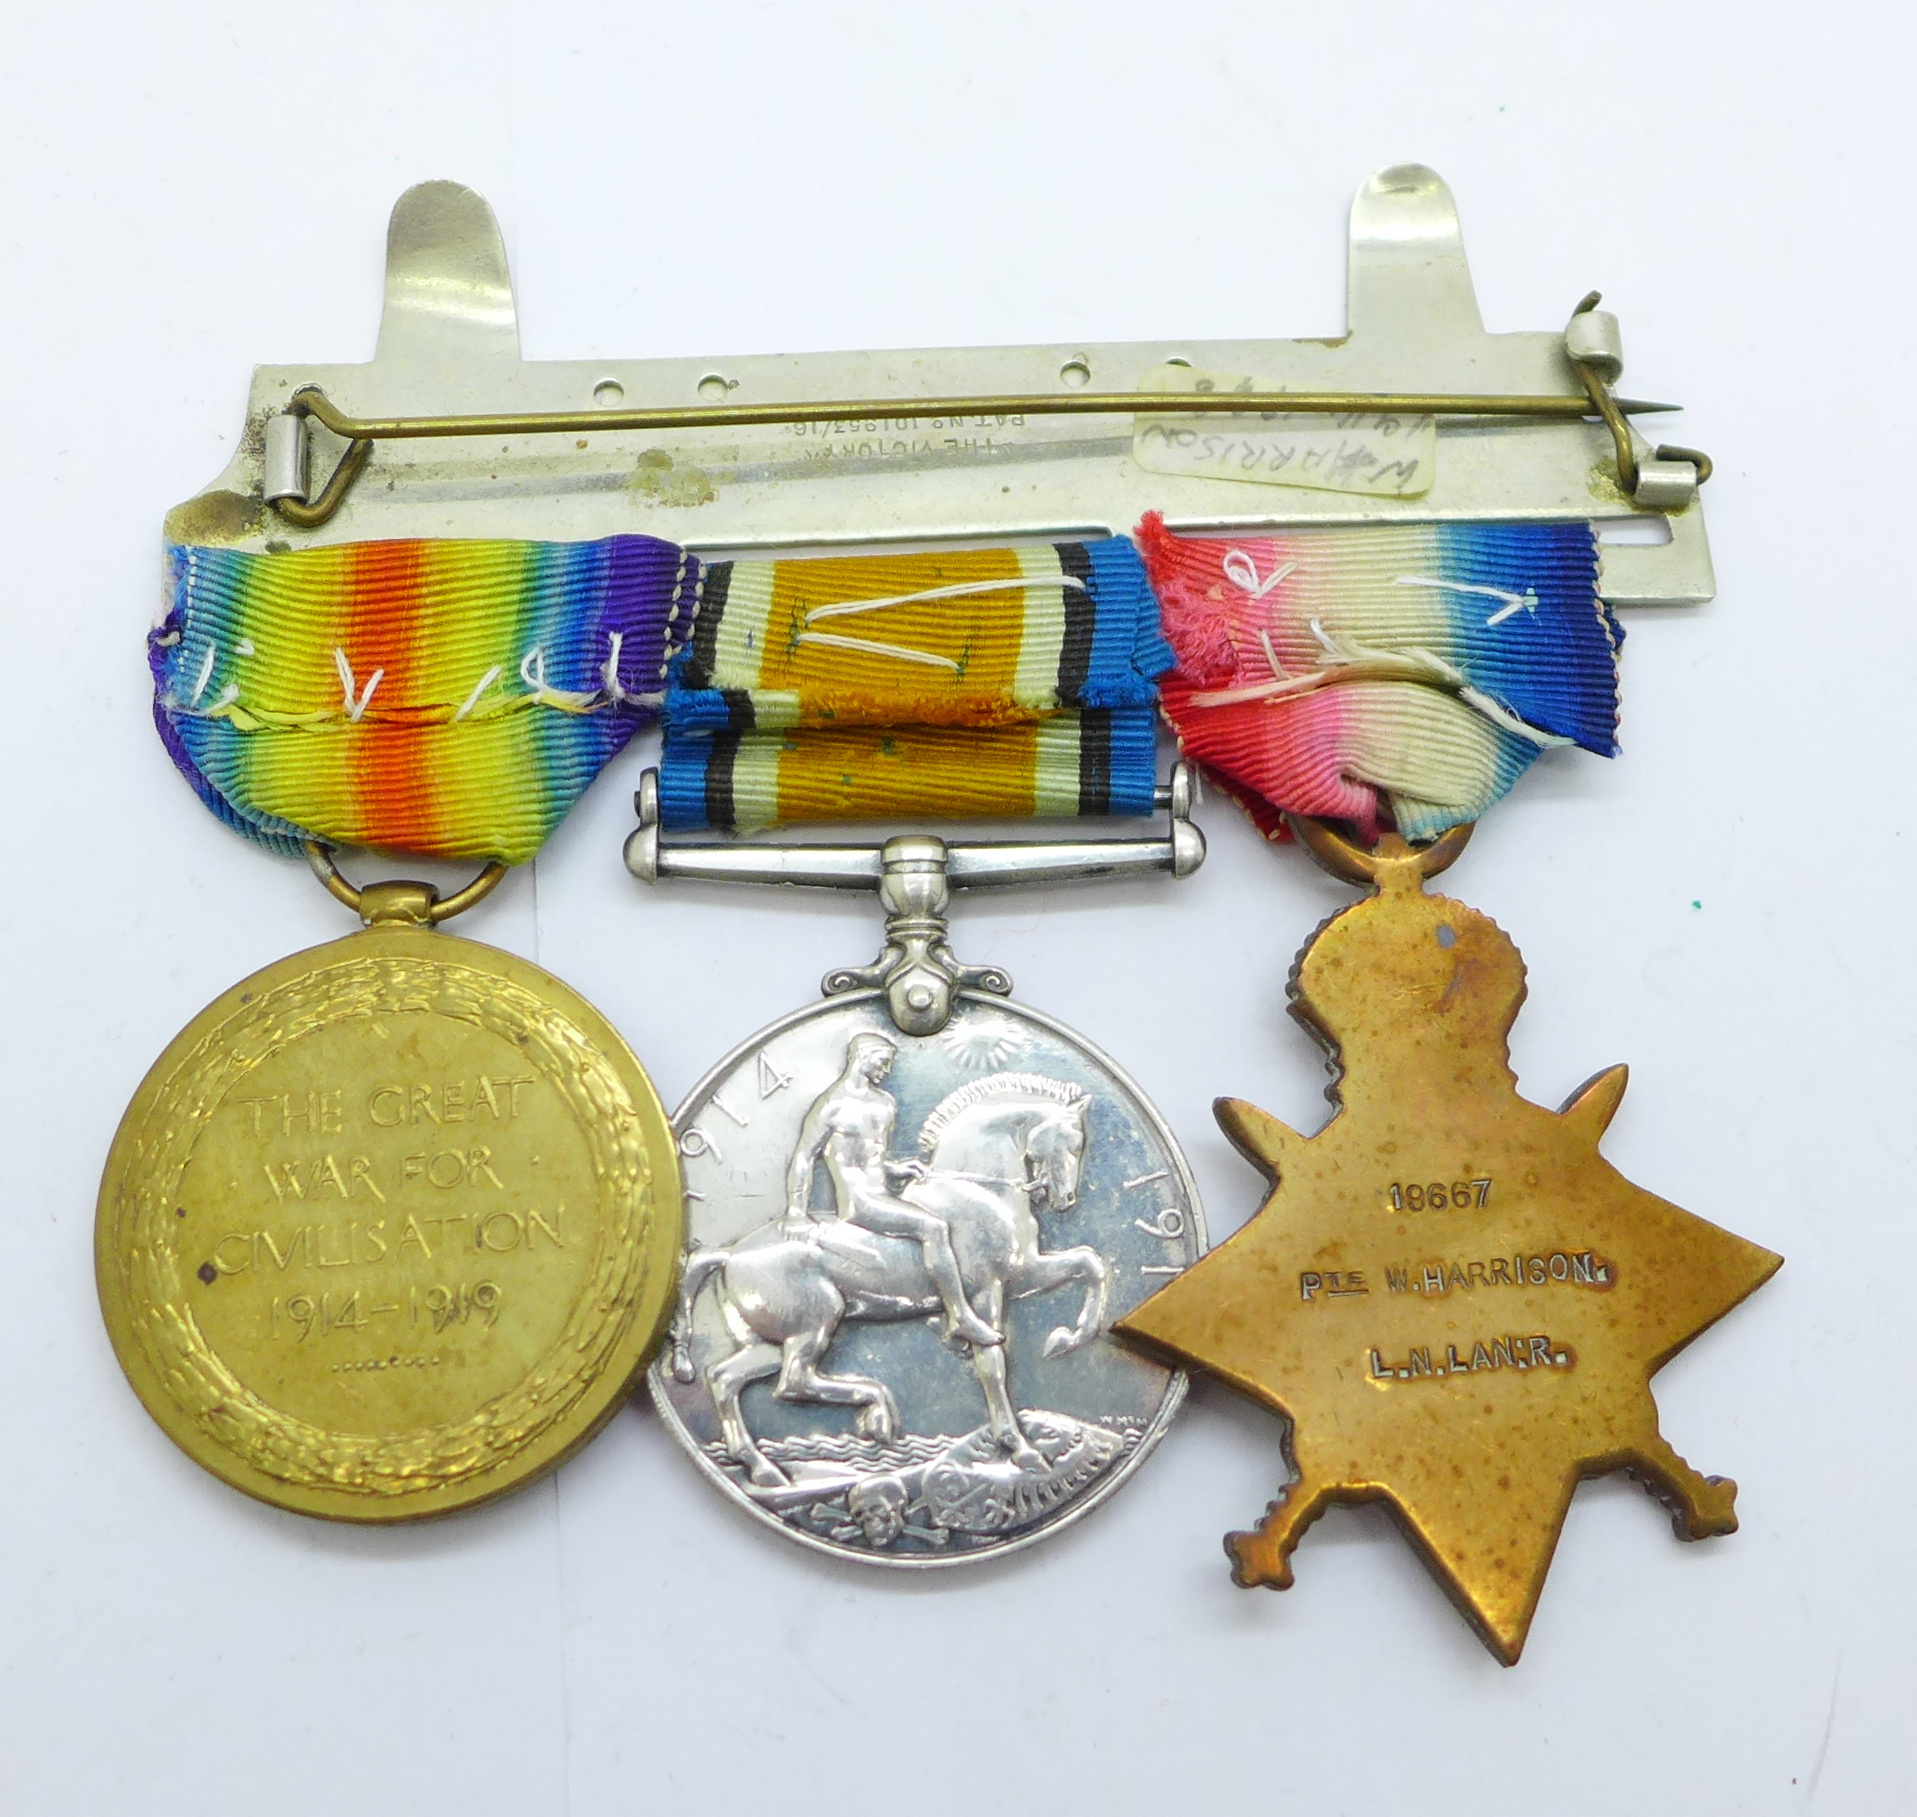 A trio of WWI medals to 19667 Pte. W. Harrison. L. N. Lan. R. - Image 2 of 3